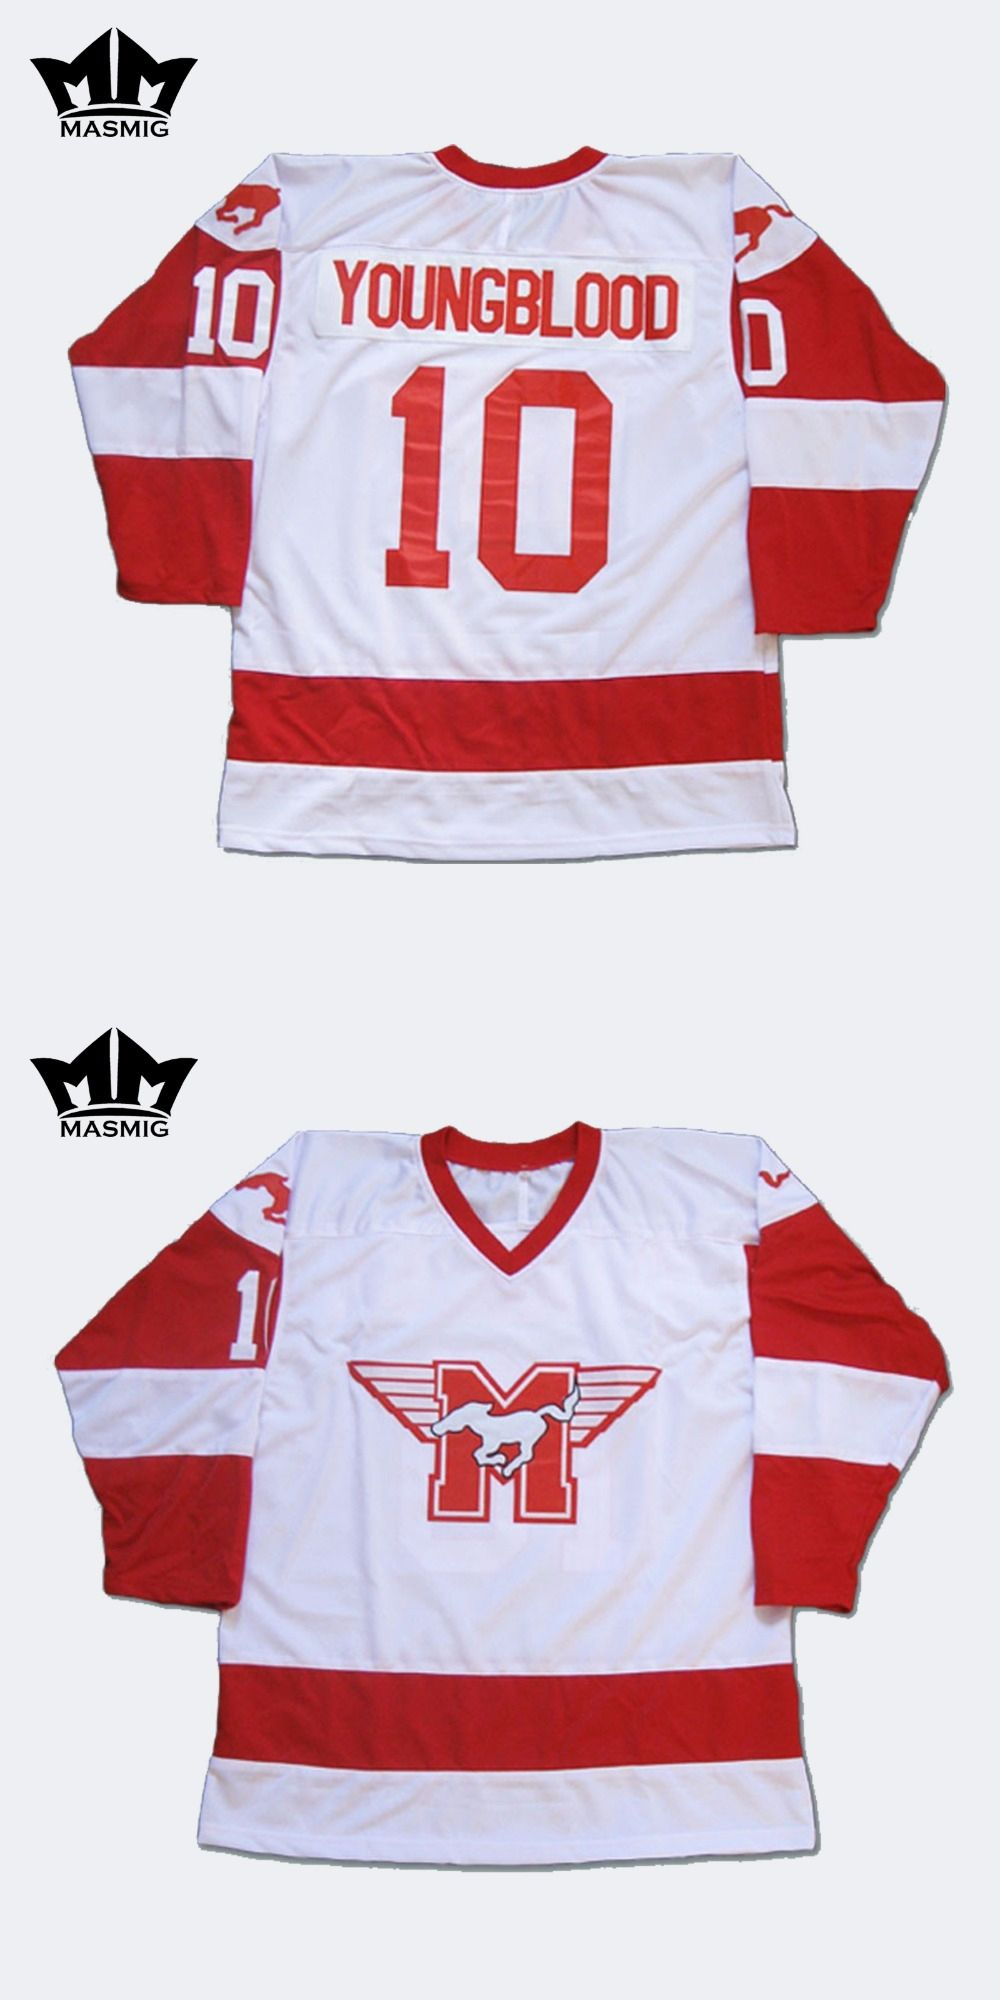 MM MASMIG Youngblood Rob Lowe 10 MUSTANGS Hockey Jersey White For Free  Shipping S M L XL XXL f0280f9308